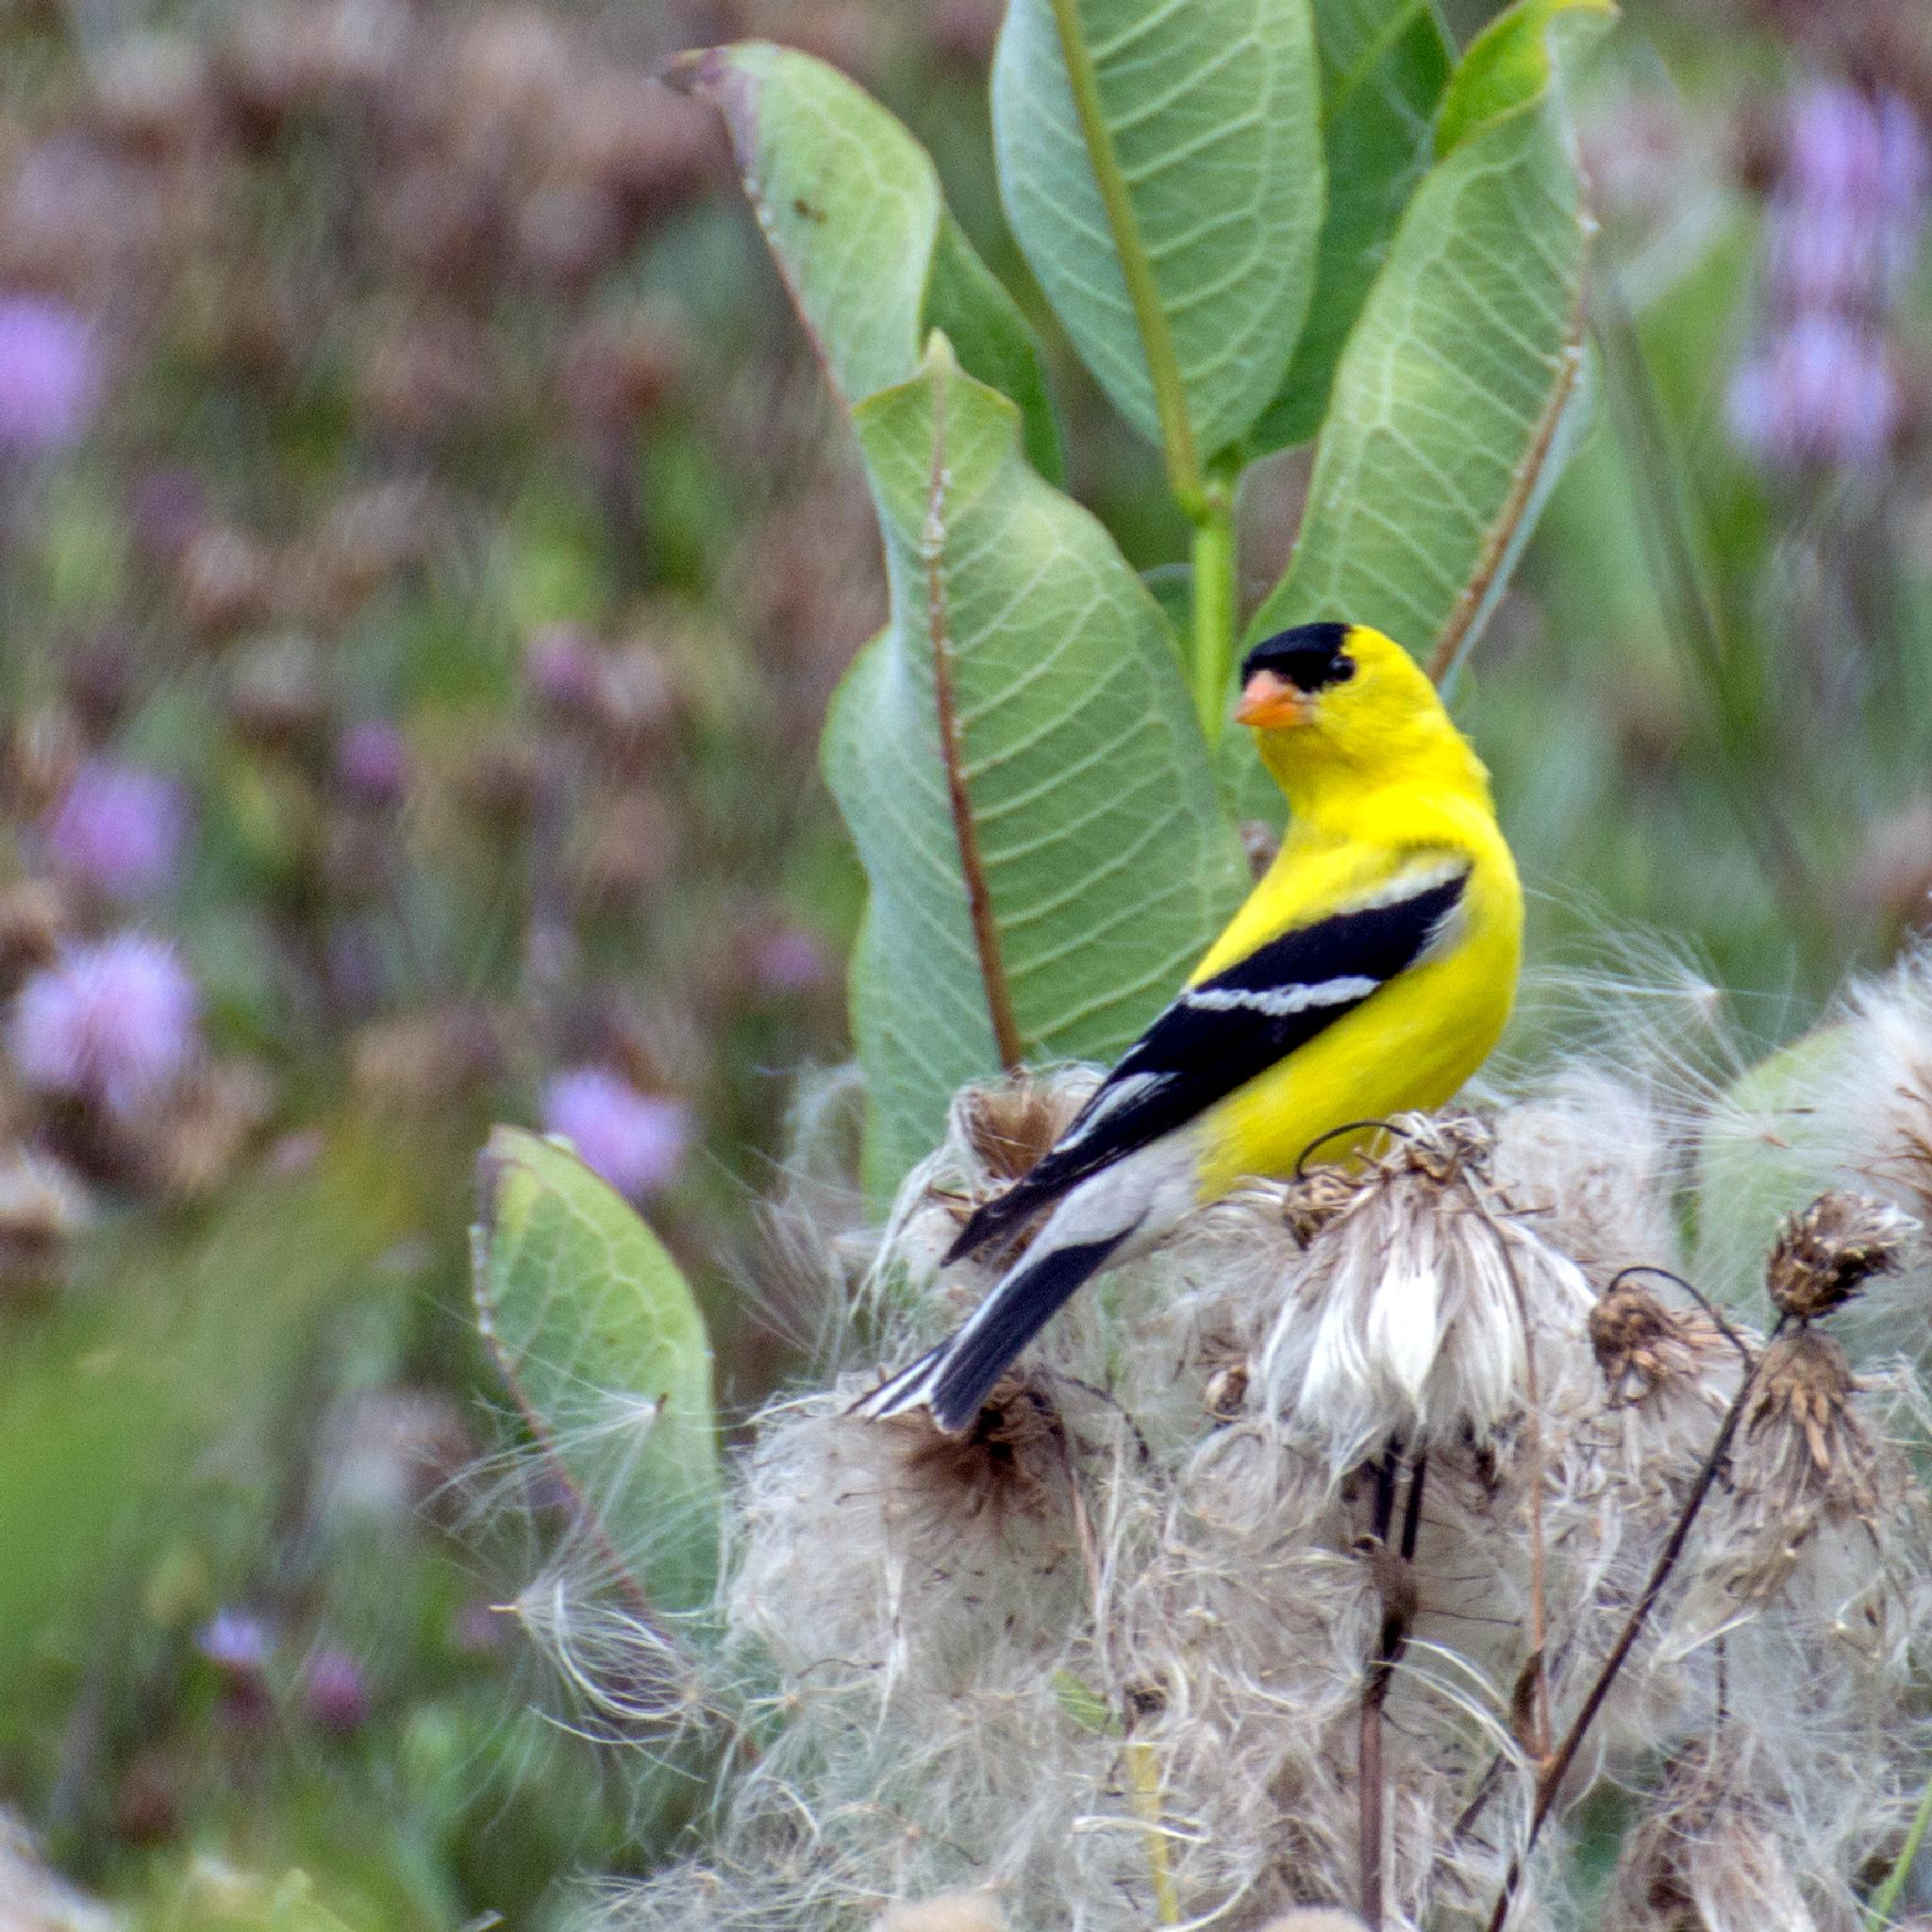 American goldfinch by Judy Florio